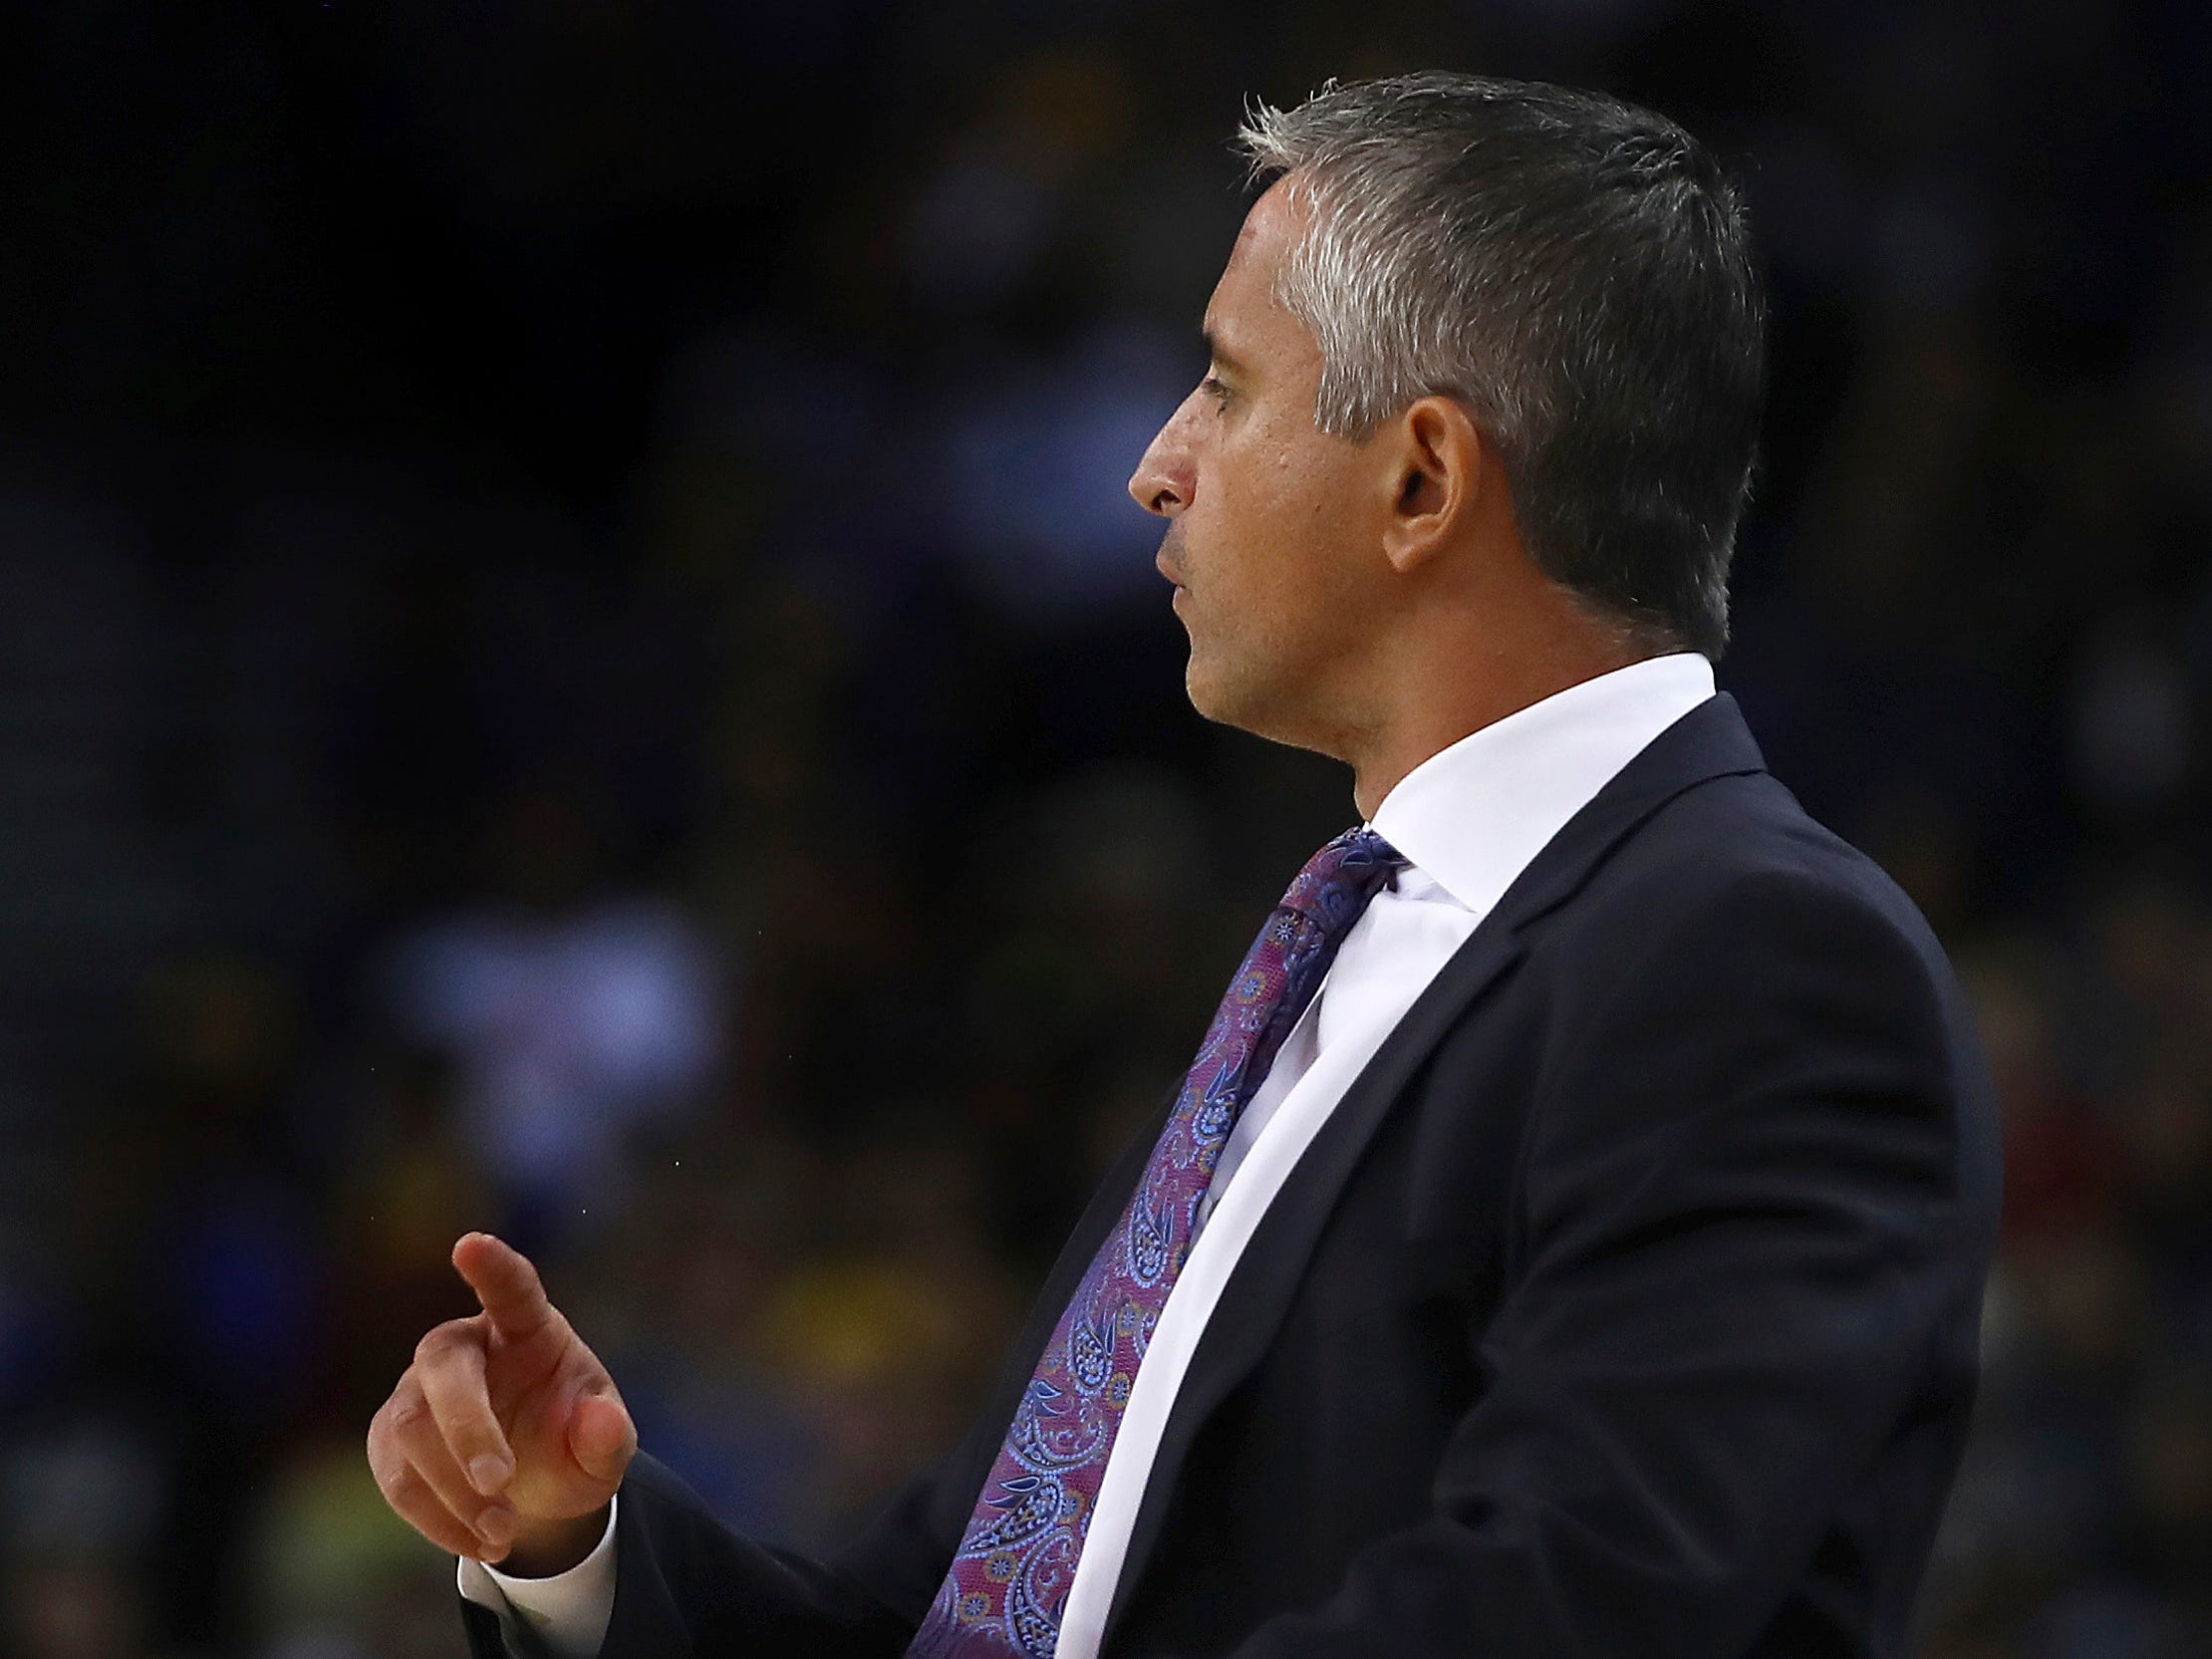 Phoenix Suns' coach Igor Kokoskov gestures during the first half of a preseason NBA basketball game against the Golden State Warriors Monday, Oct. 8, 2018, in Oakland, Calif.